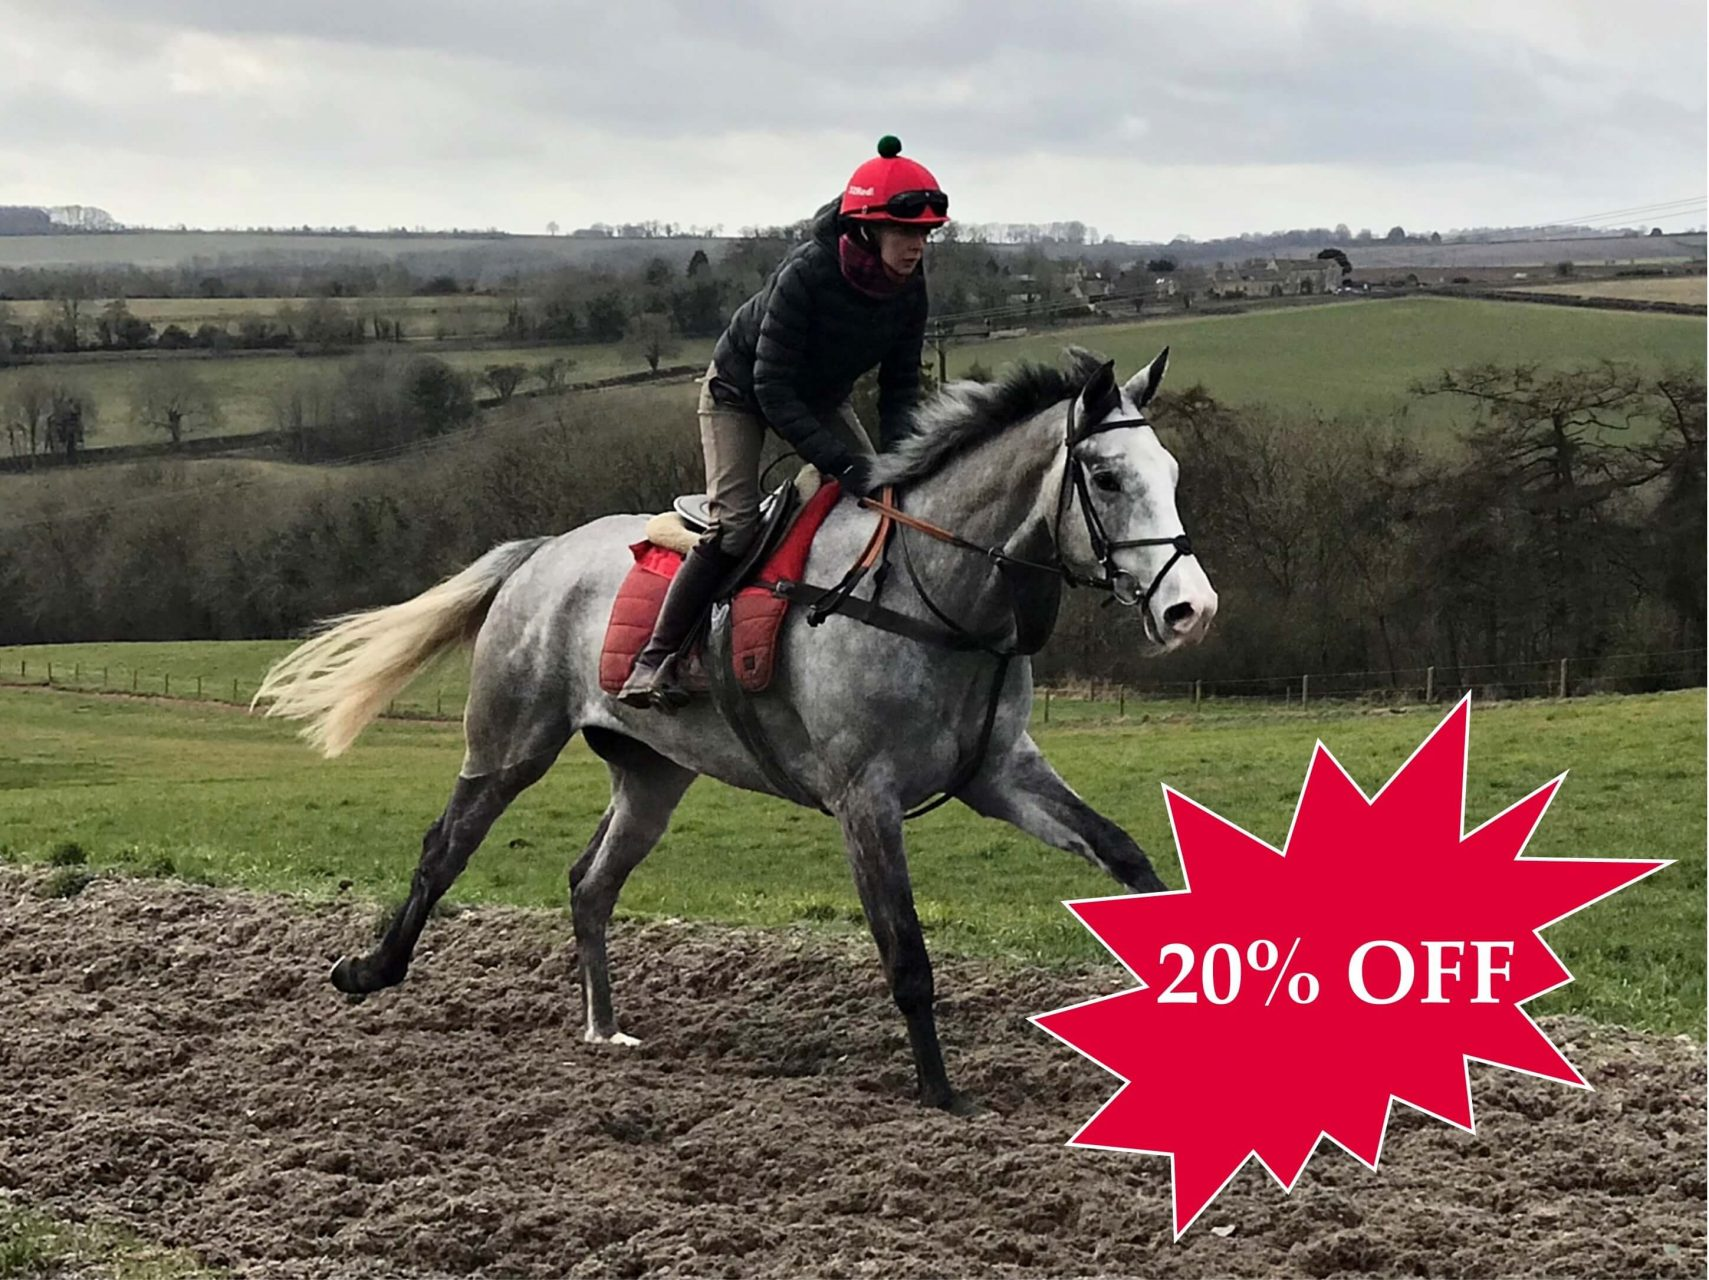 20% OFF BLACK SAM'S SILVER RACEHORSE SYNDICATE TRAINED BY FERGAL O'BRIEN